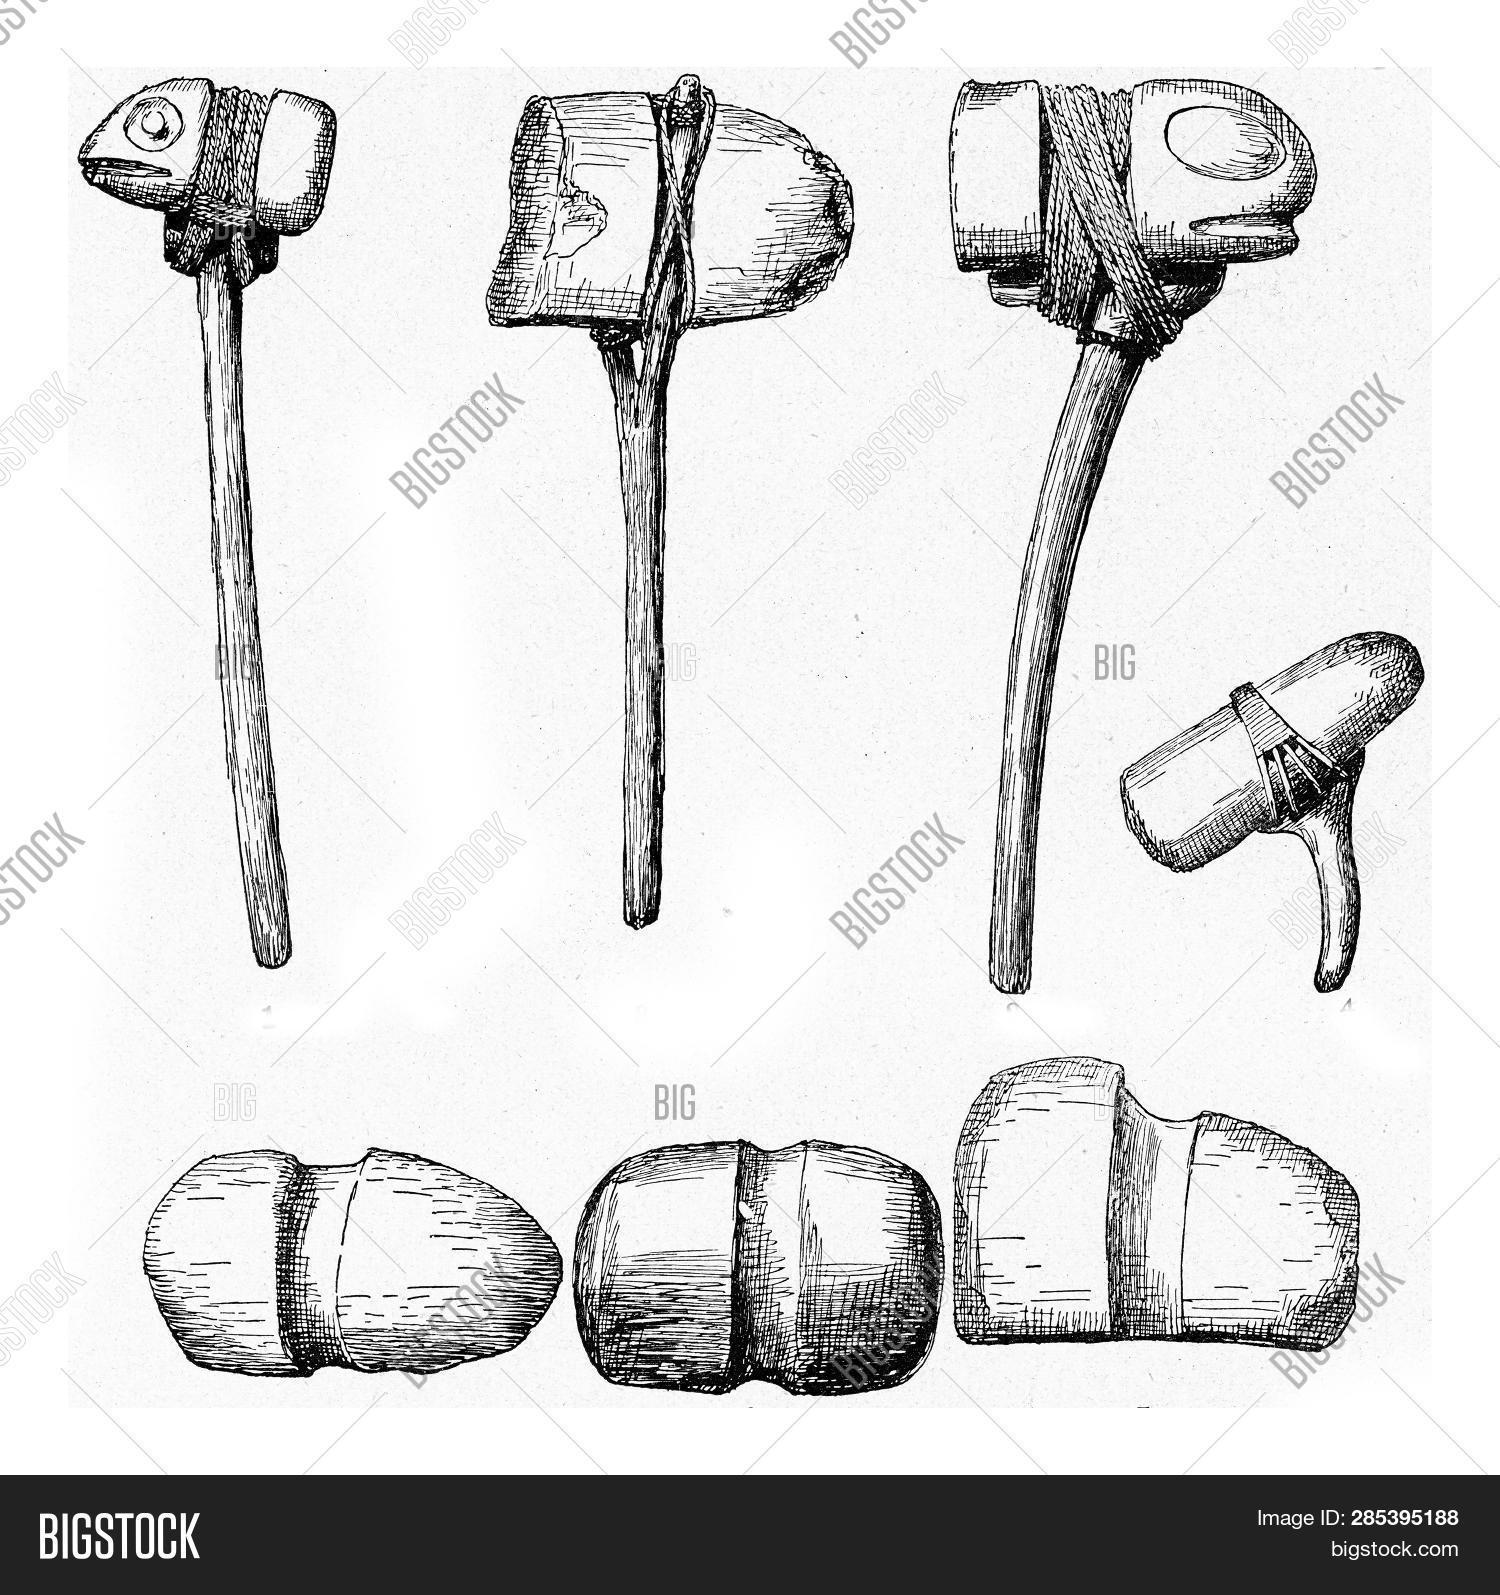 Stone Hammers Grooves Image & Photo (Free Trial) | Bigstock